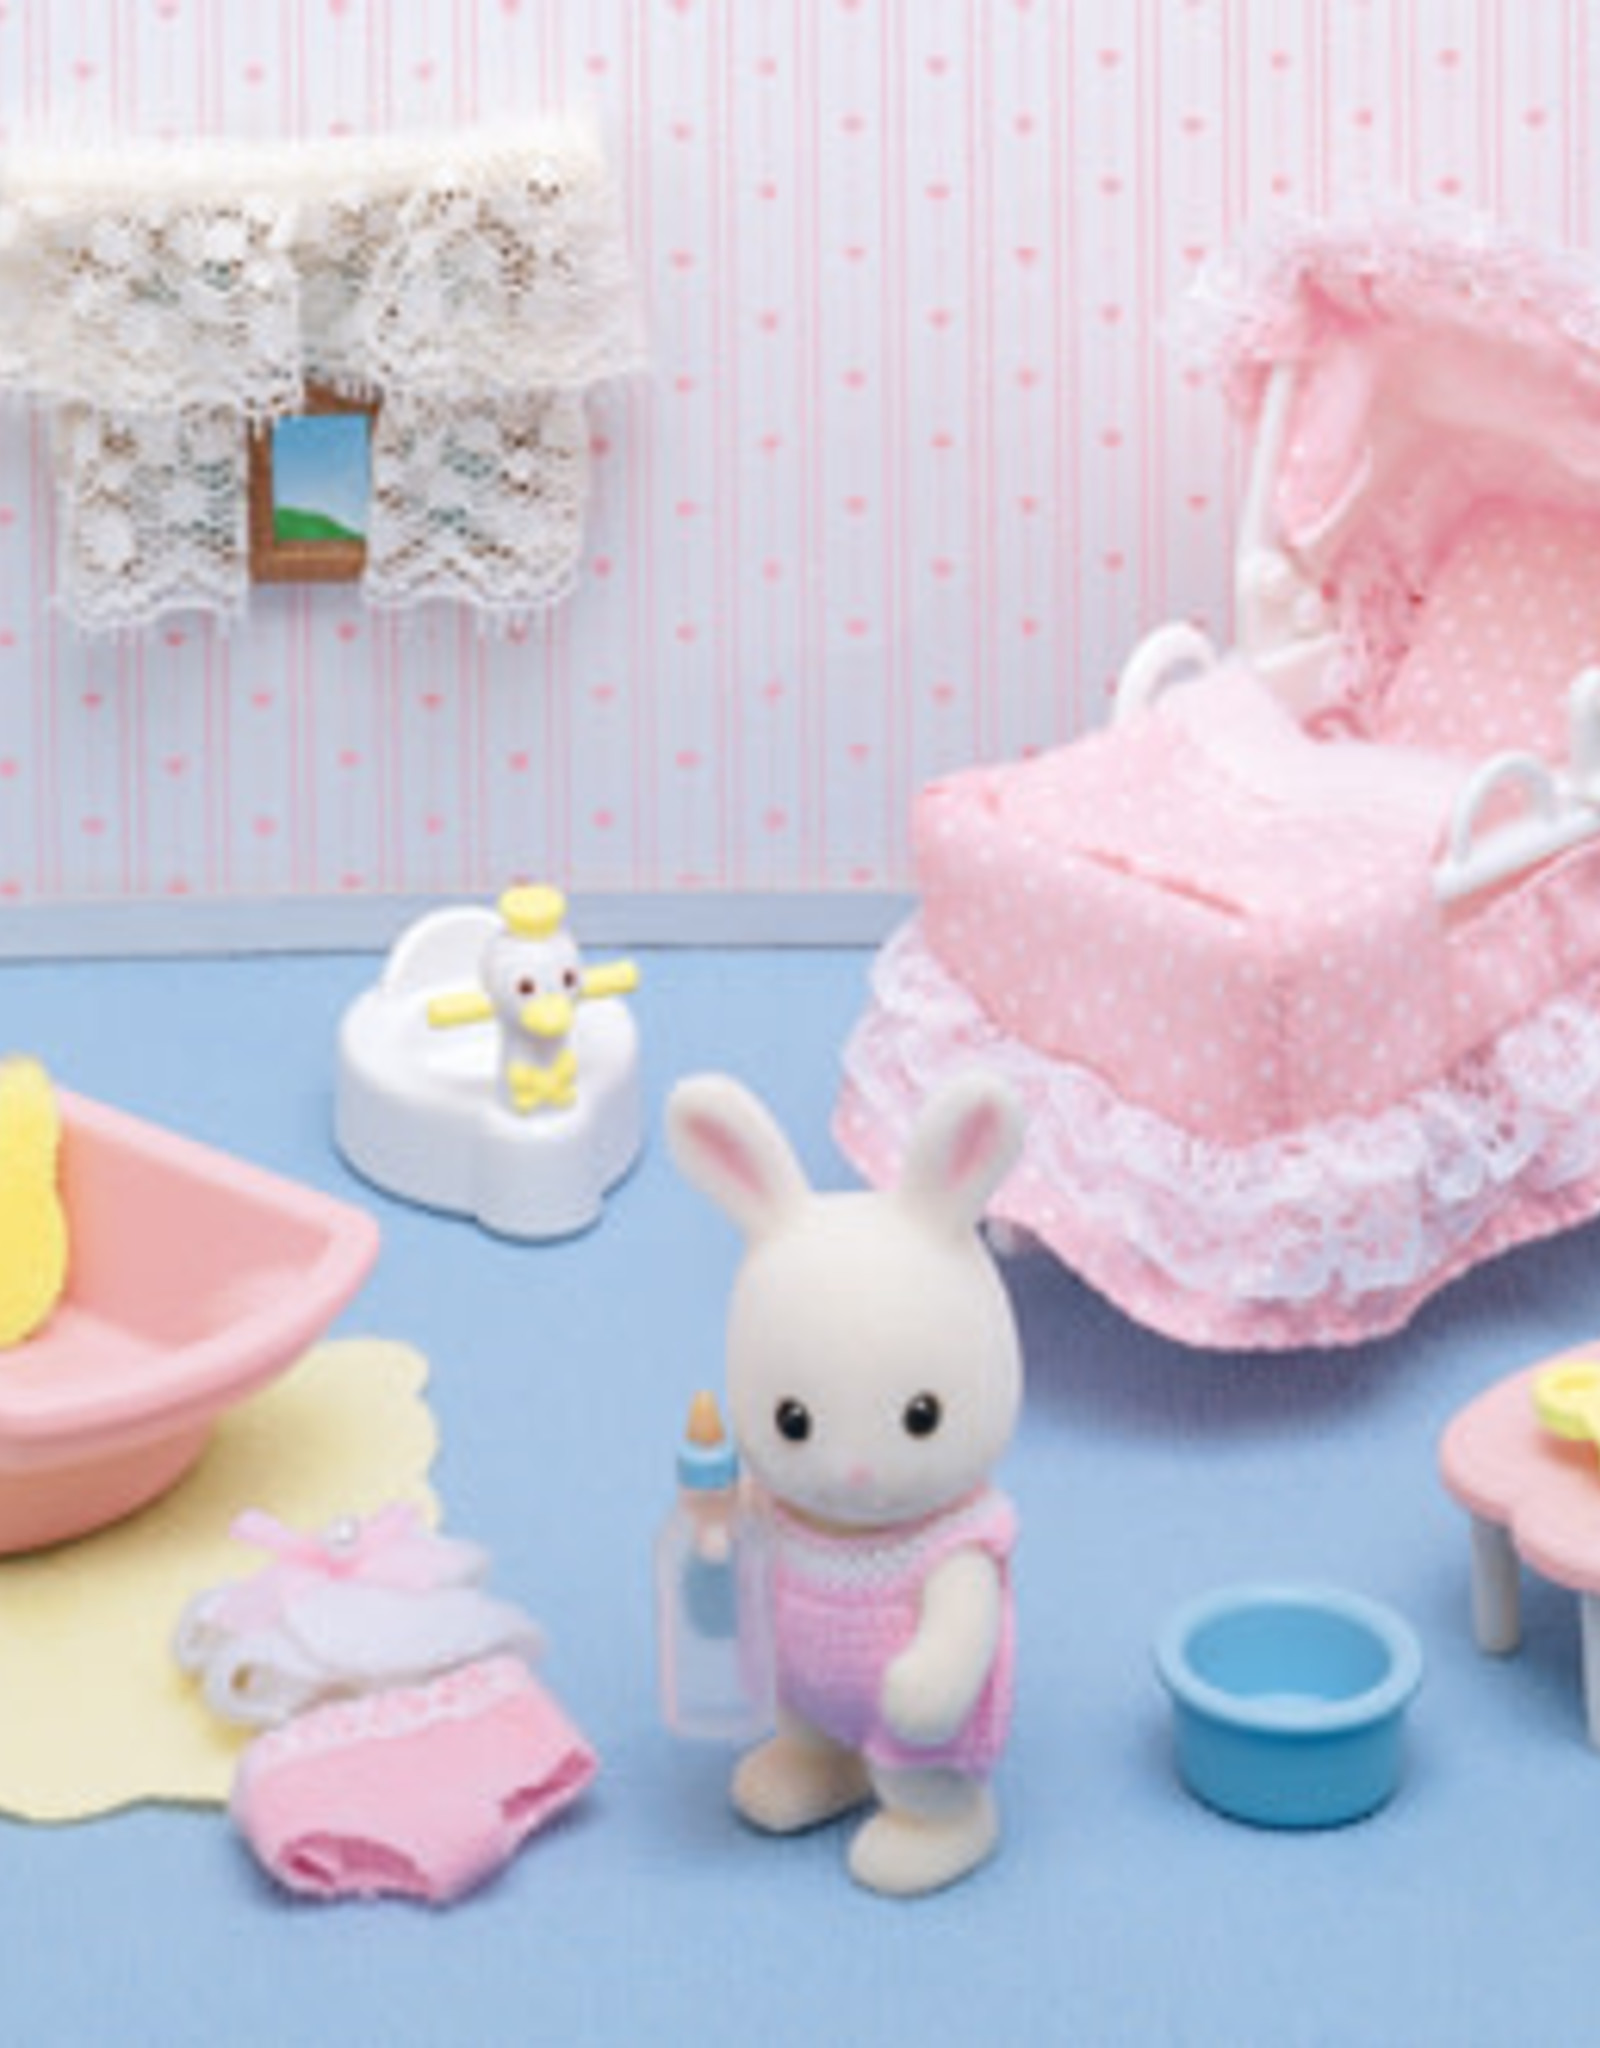 Calico Critters CC Sophie's Love N Care